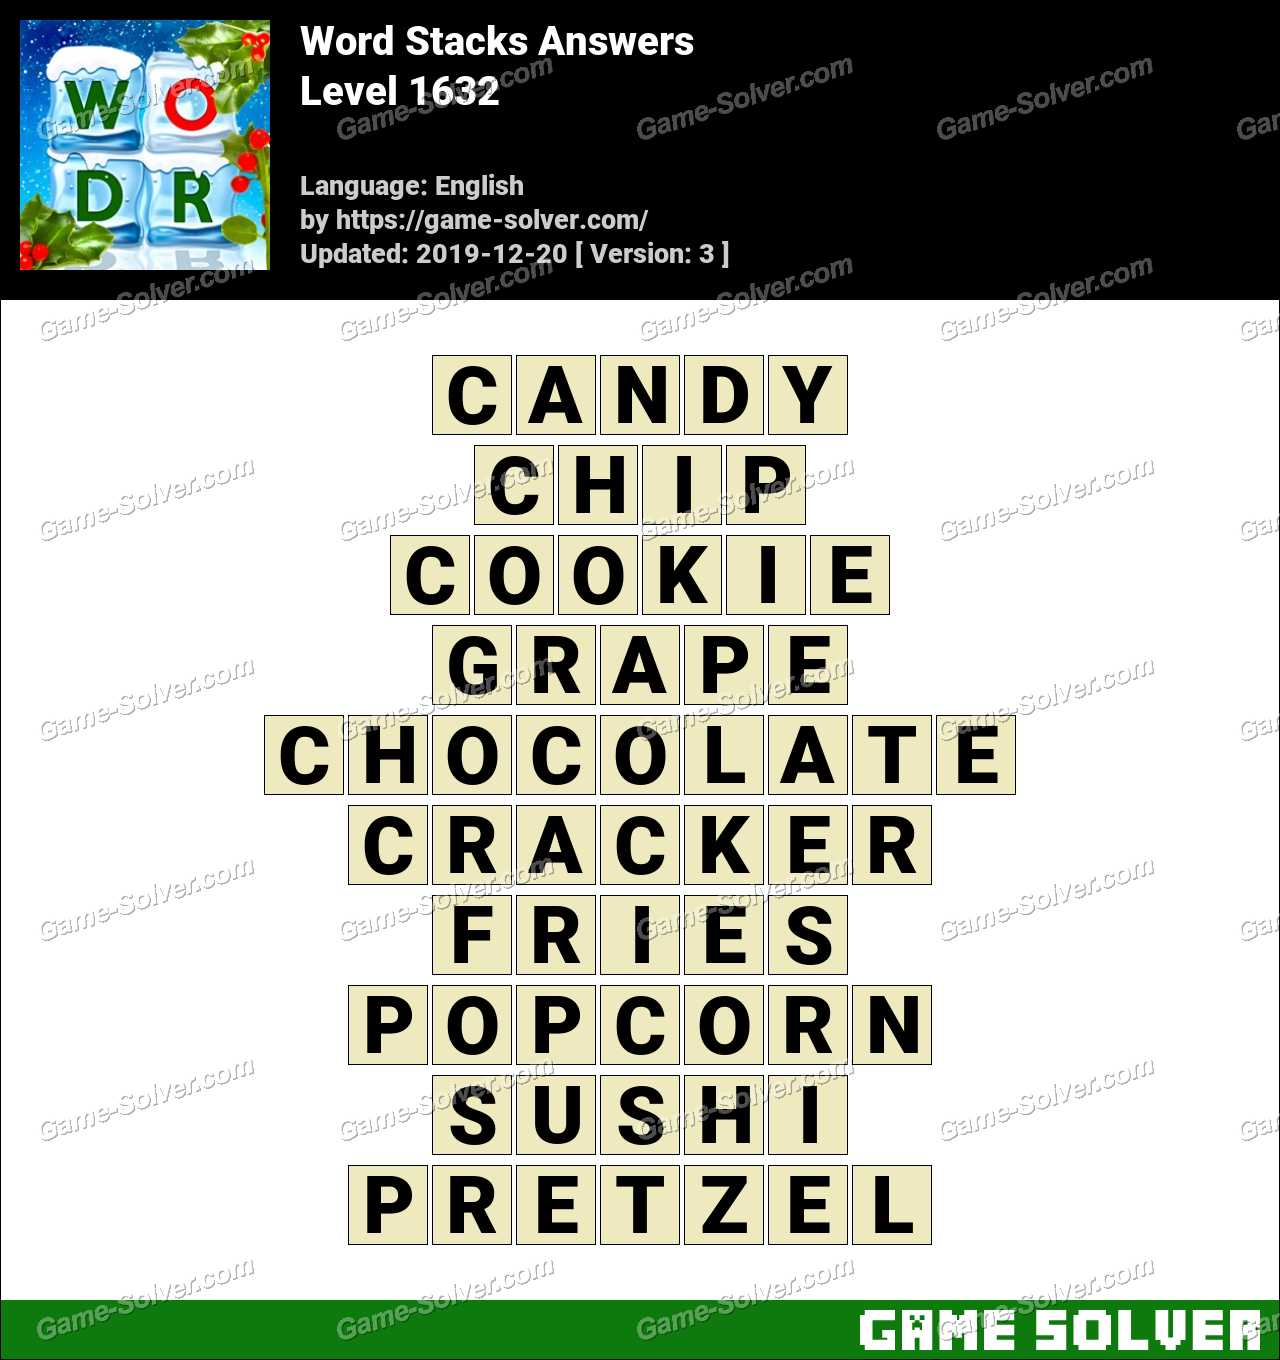 Word Stacks Level 1632 Answers